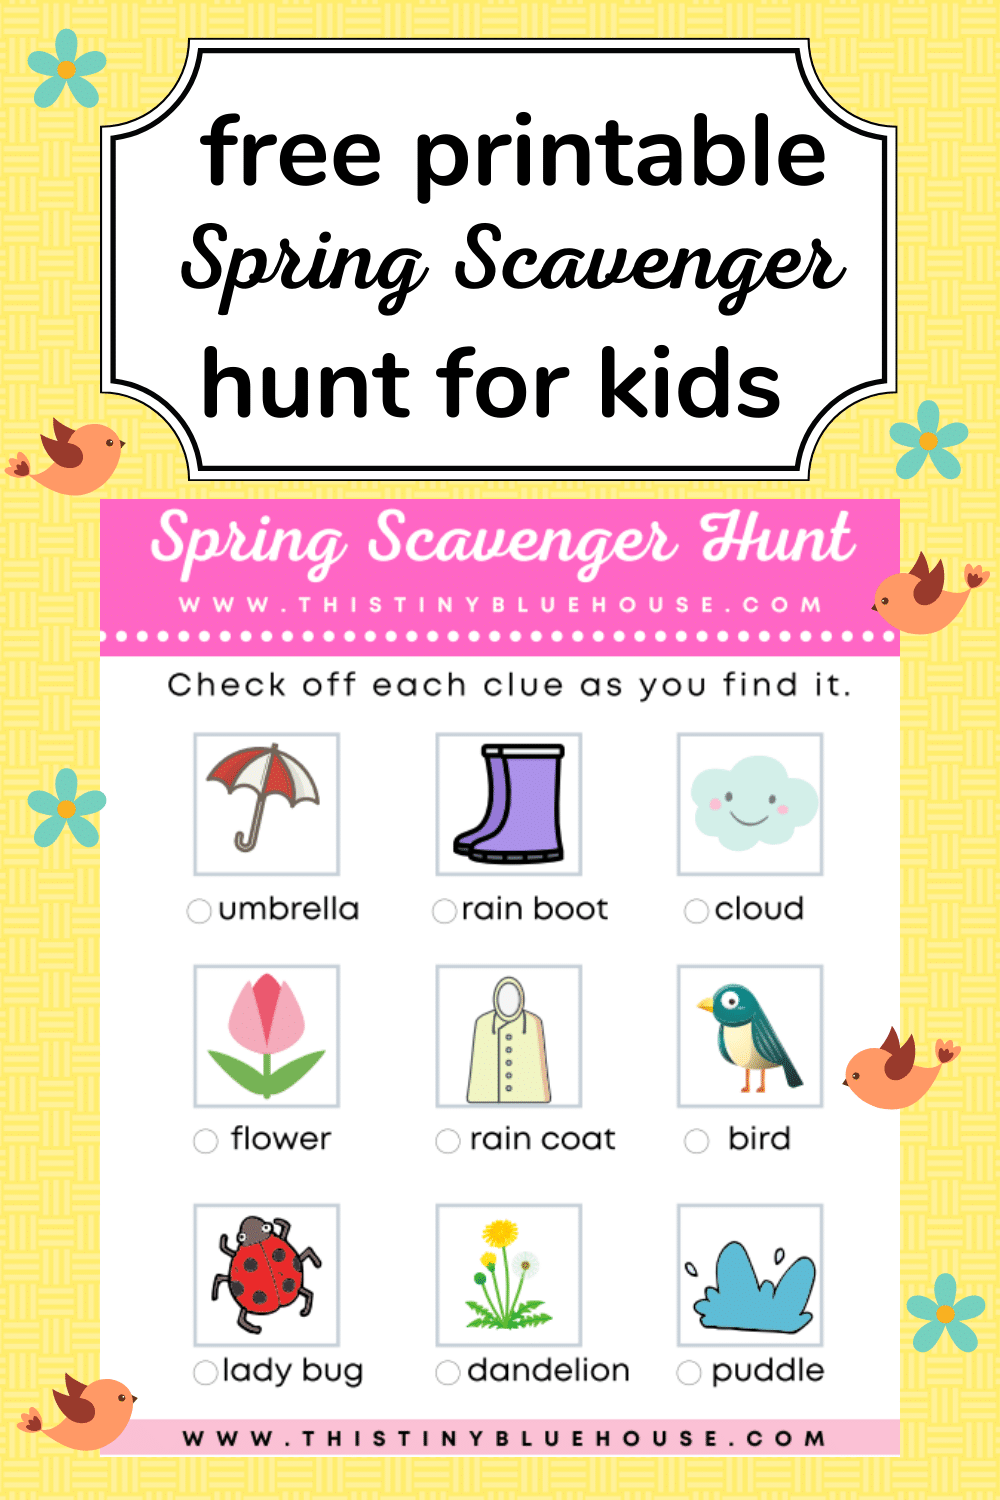 Get the kids excited about spring with the totally free printable spring scavenger hunt for kids. Walk, bike, blade or scoot around your neighbor and help the kids find scavenger items while getting in some exercise and fresh air!